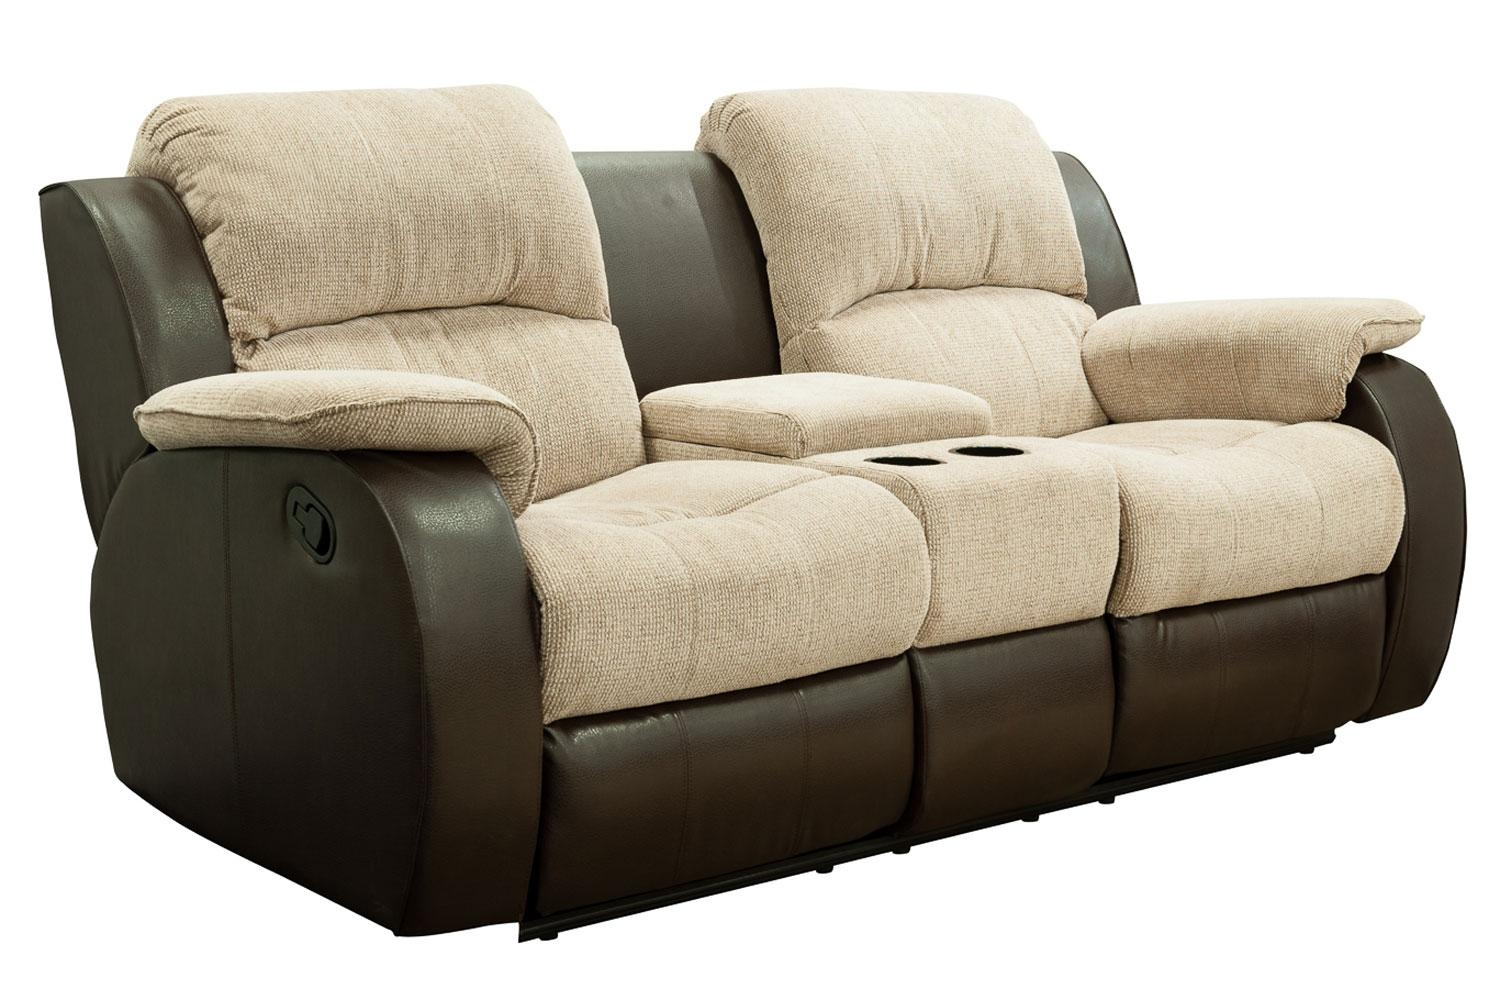 Funiture: Modern Reclining Sofa Ideas For Living Room Using Black With Regard To Sofas With Drink Holder (View 5 of 20)